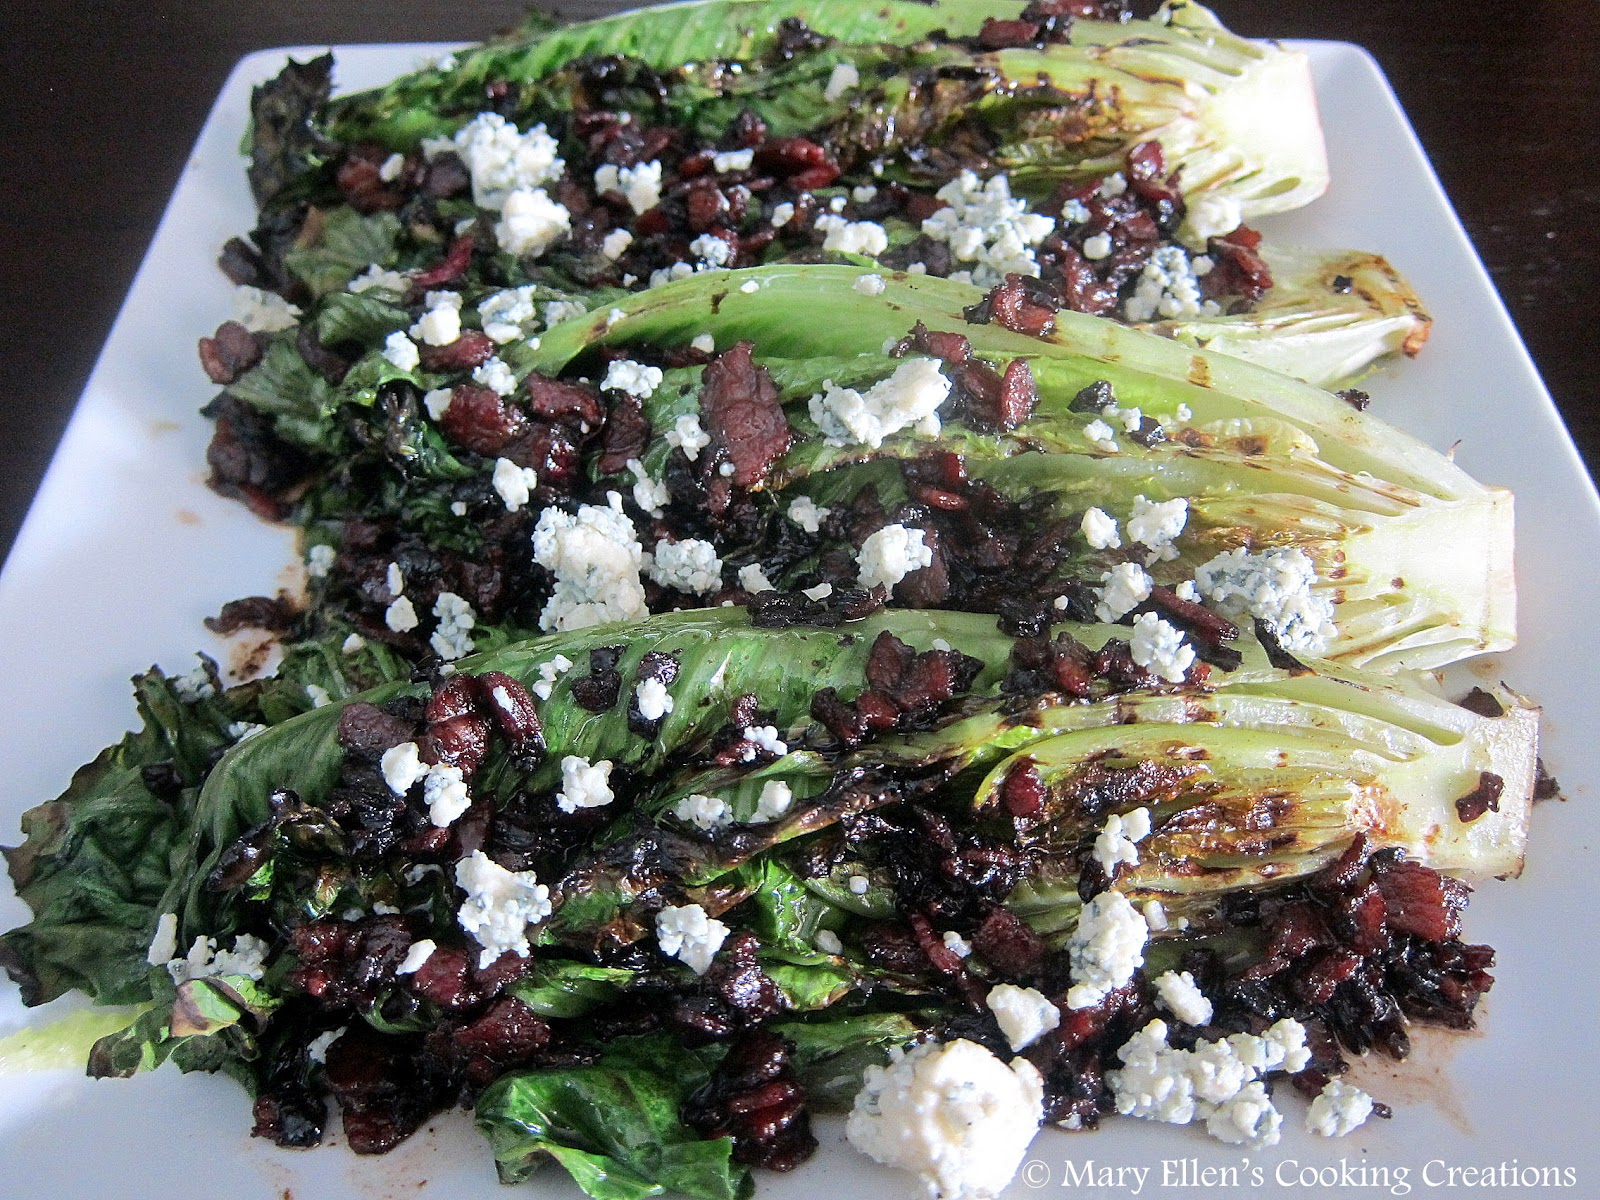 Grilled Broccoli Over Blue Cheese Dressing Recipes — Dishmaps